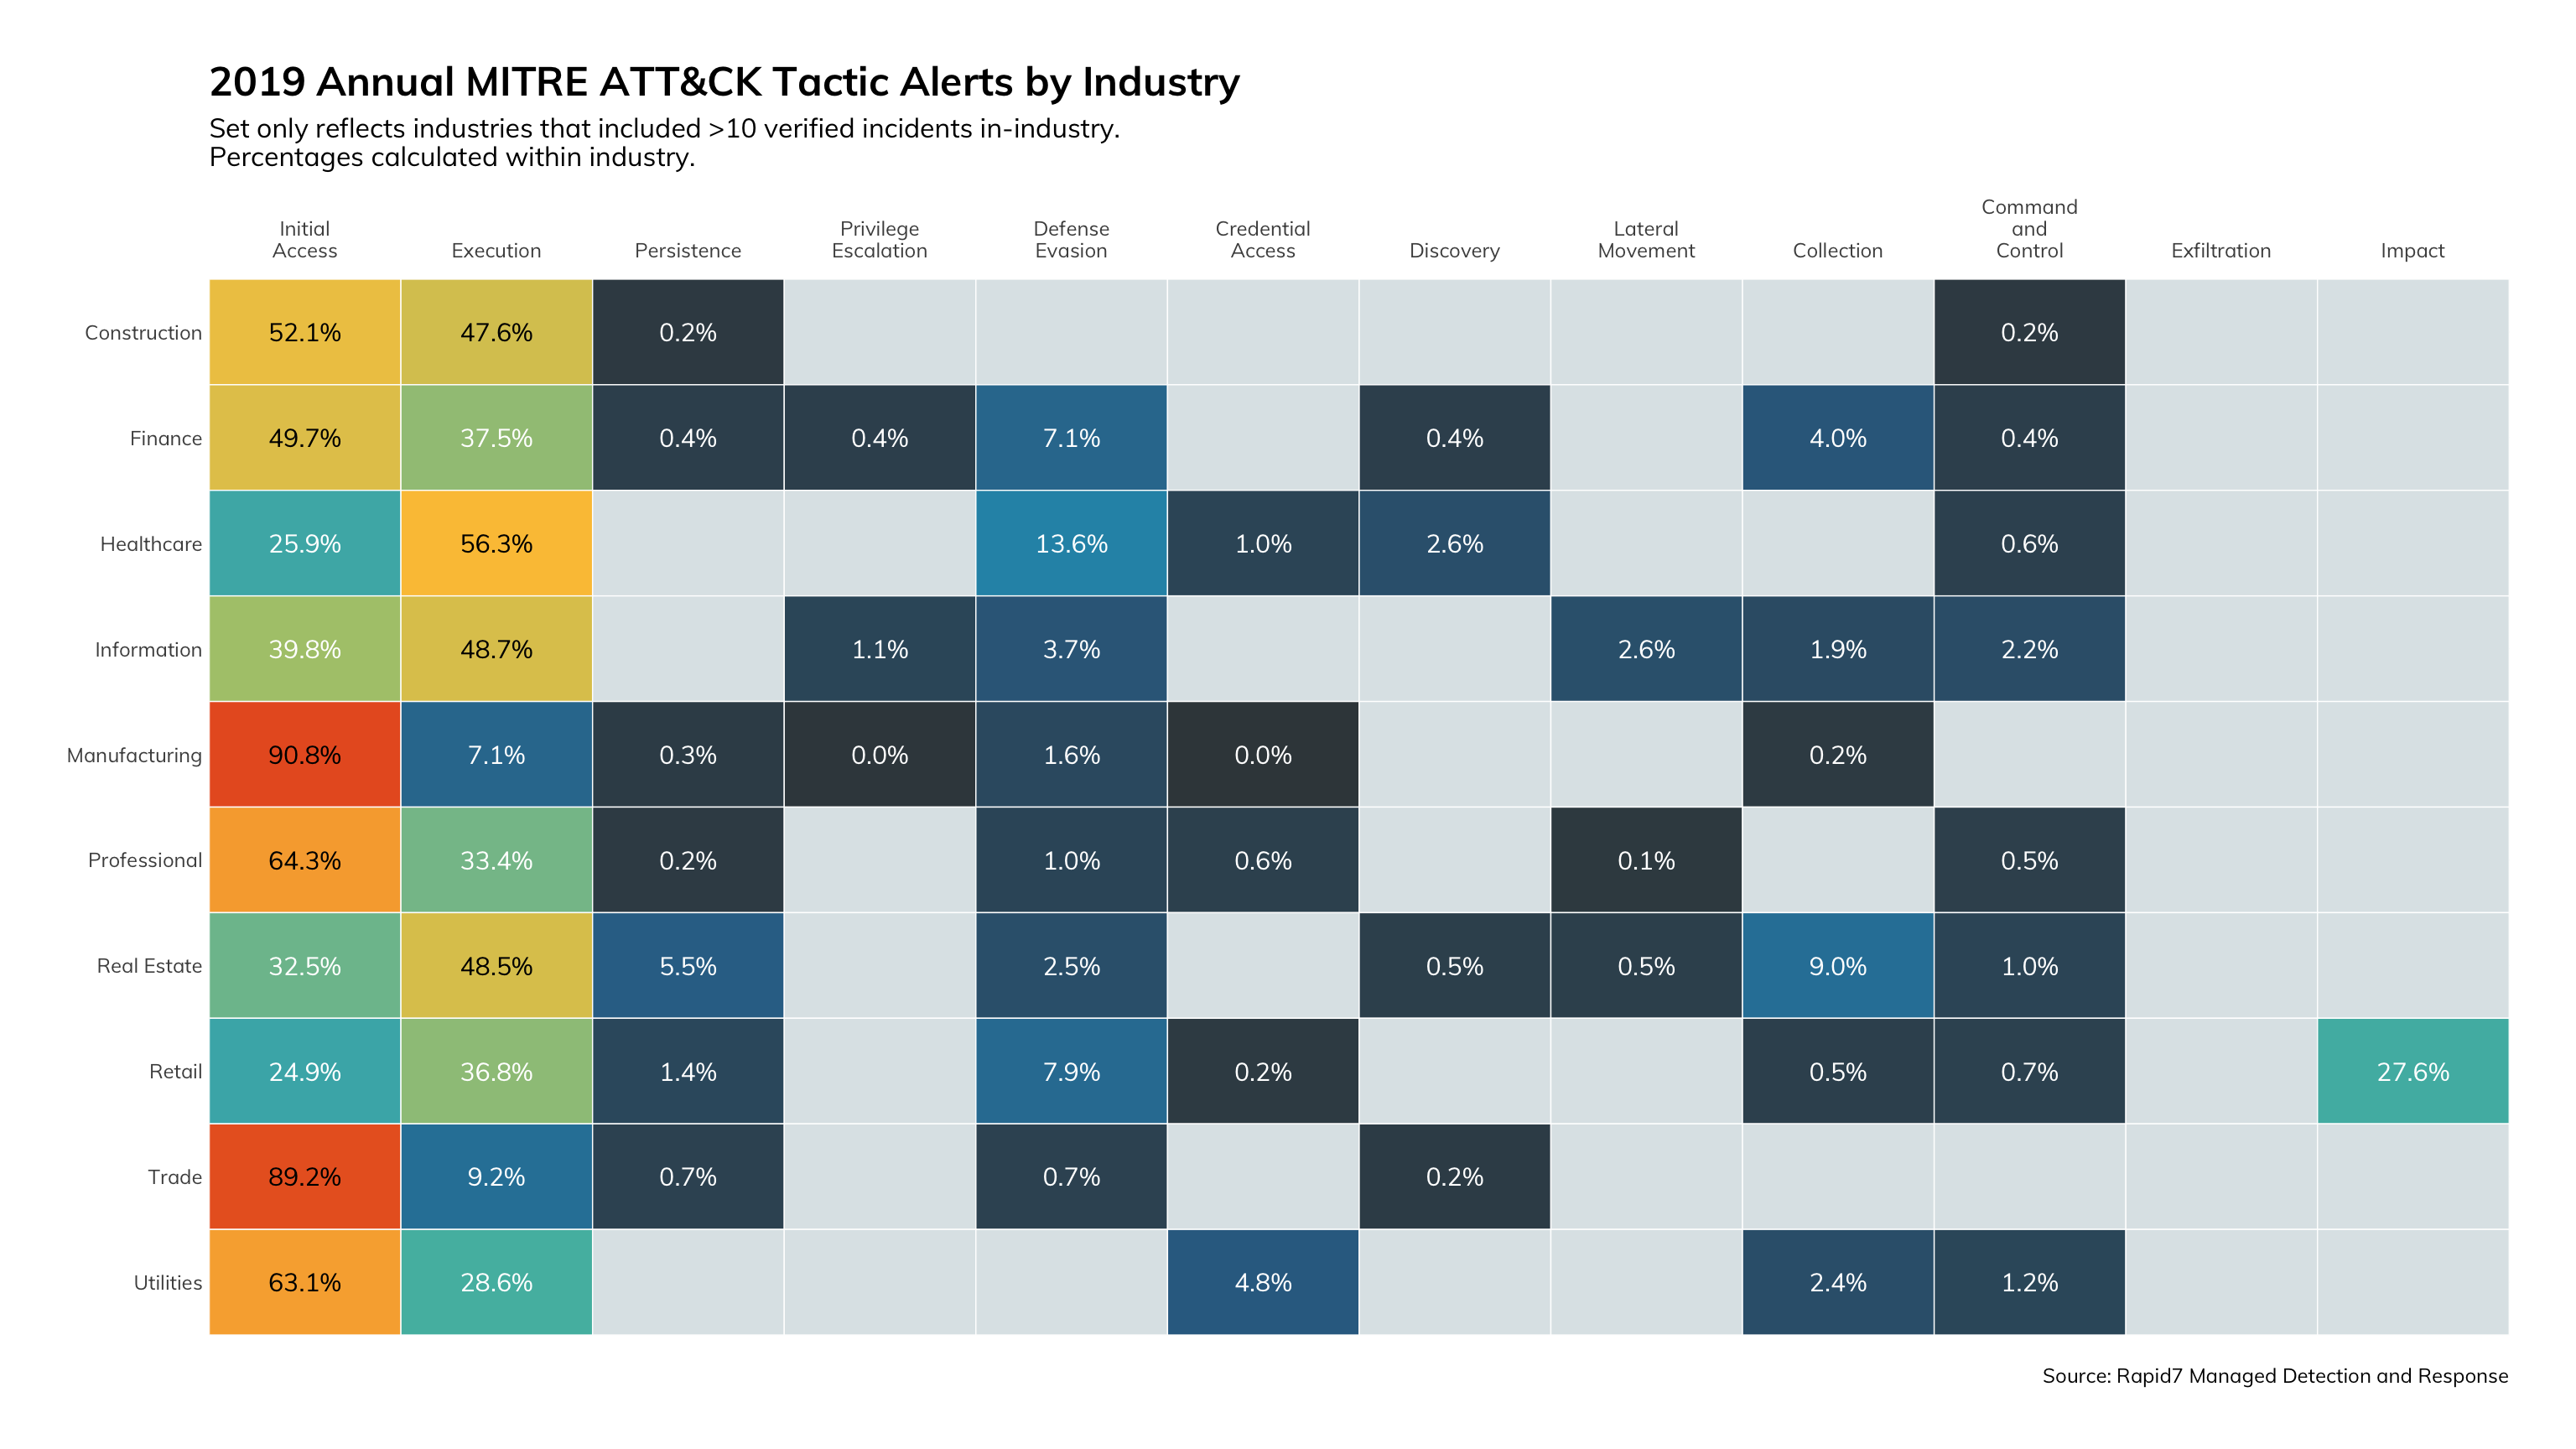 Figure 13: 2019 Annual MITRE ATT&CK Tactic Alerts by Industry